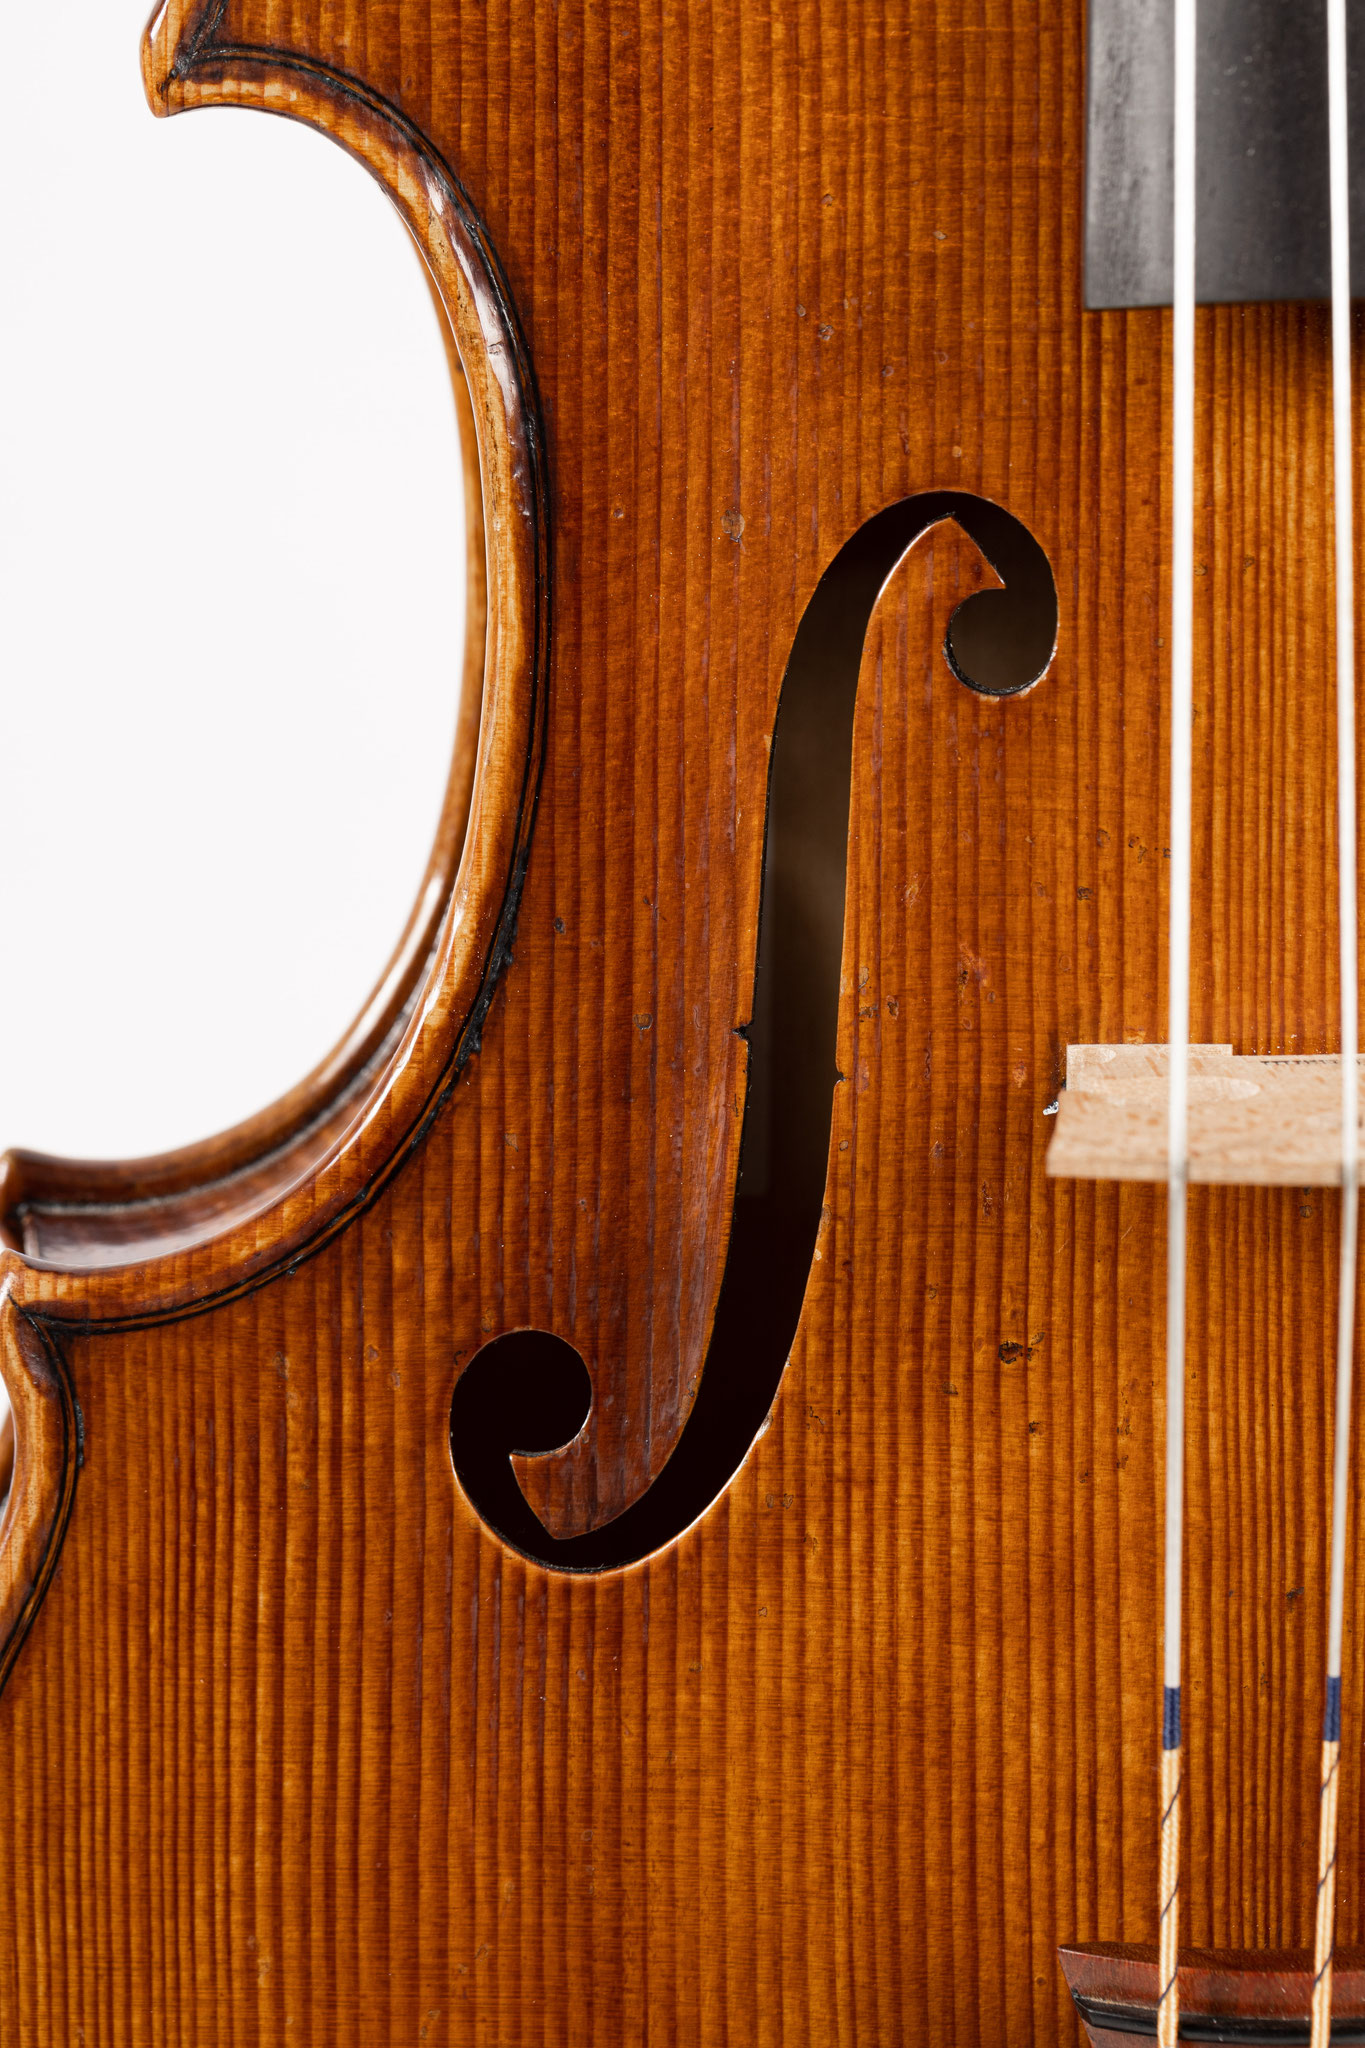 Viola in the style of G.Guarneri del Gesù (2020/CH), Photo: VDB Photography